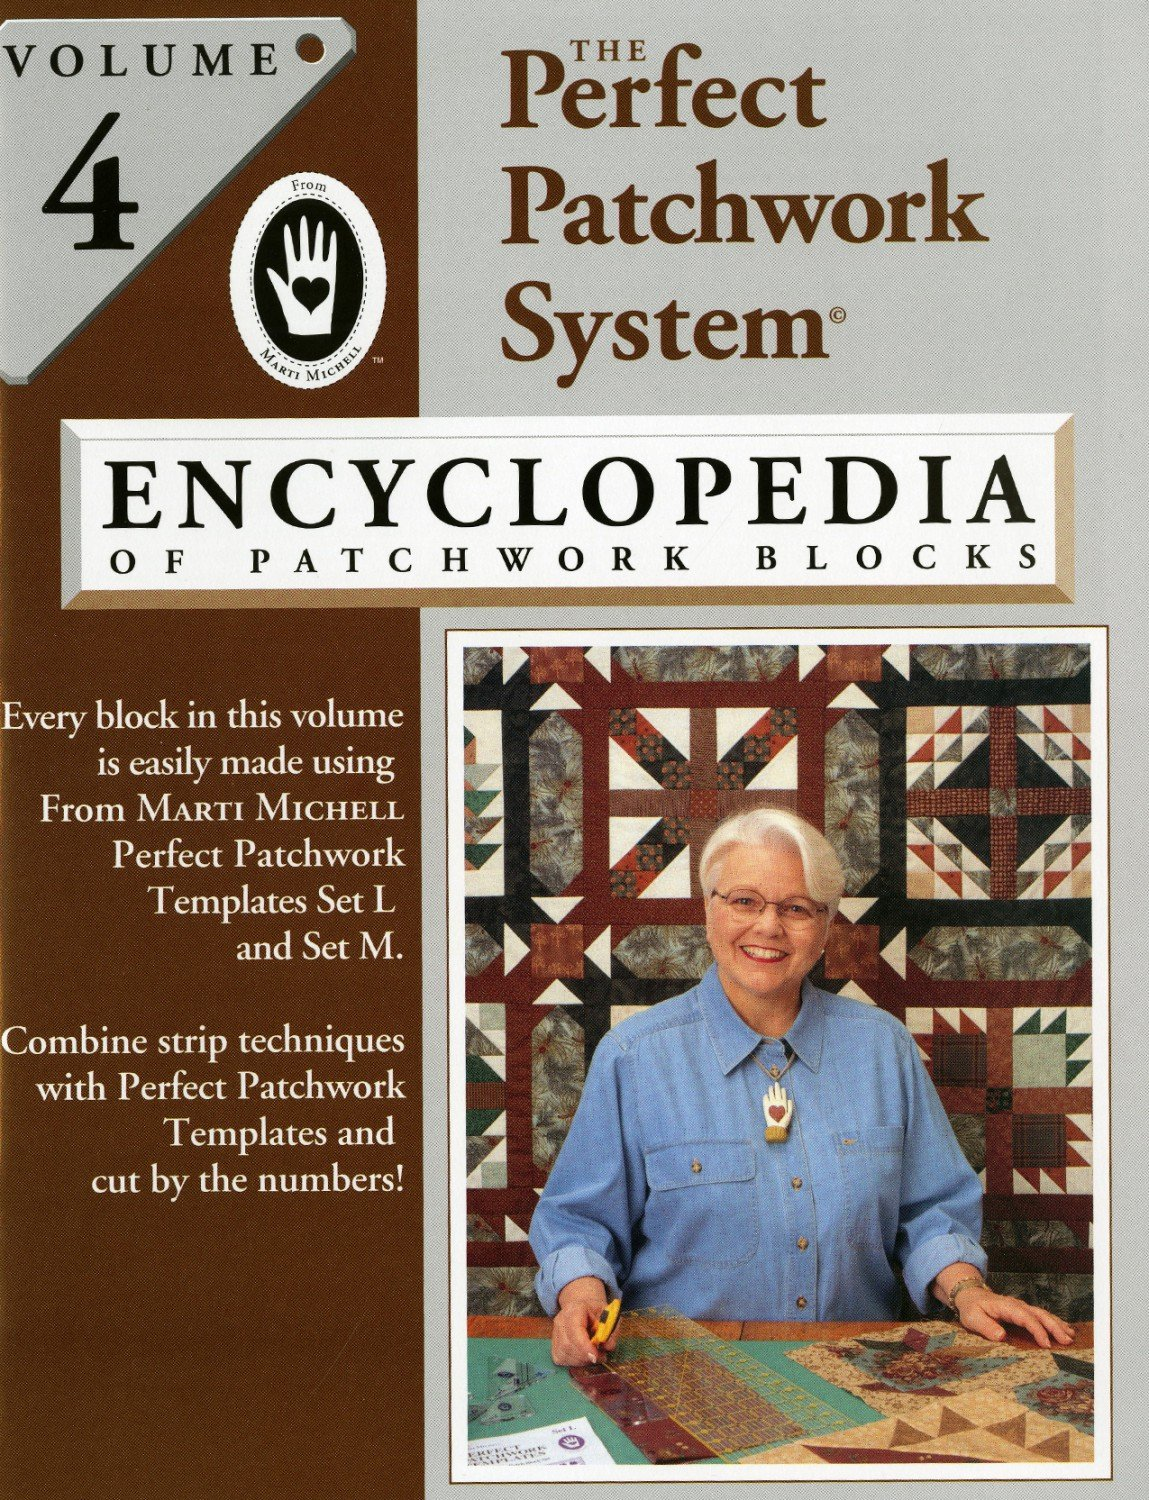 Marti Michell - Volume 4 - Encyclopedia of Patchwork Blocks - MM8346